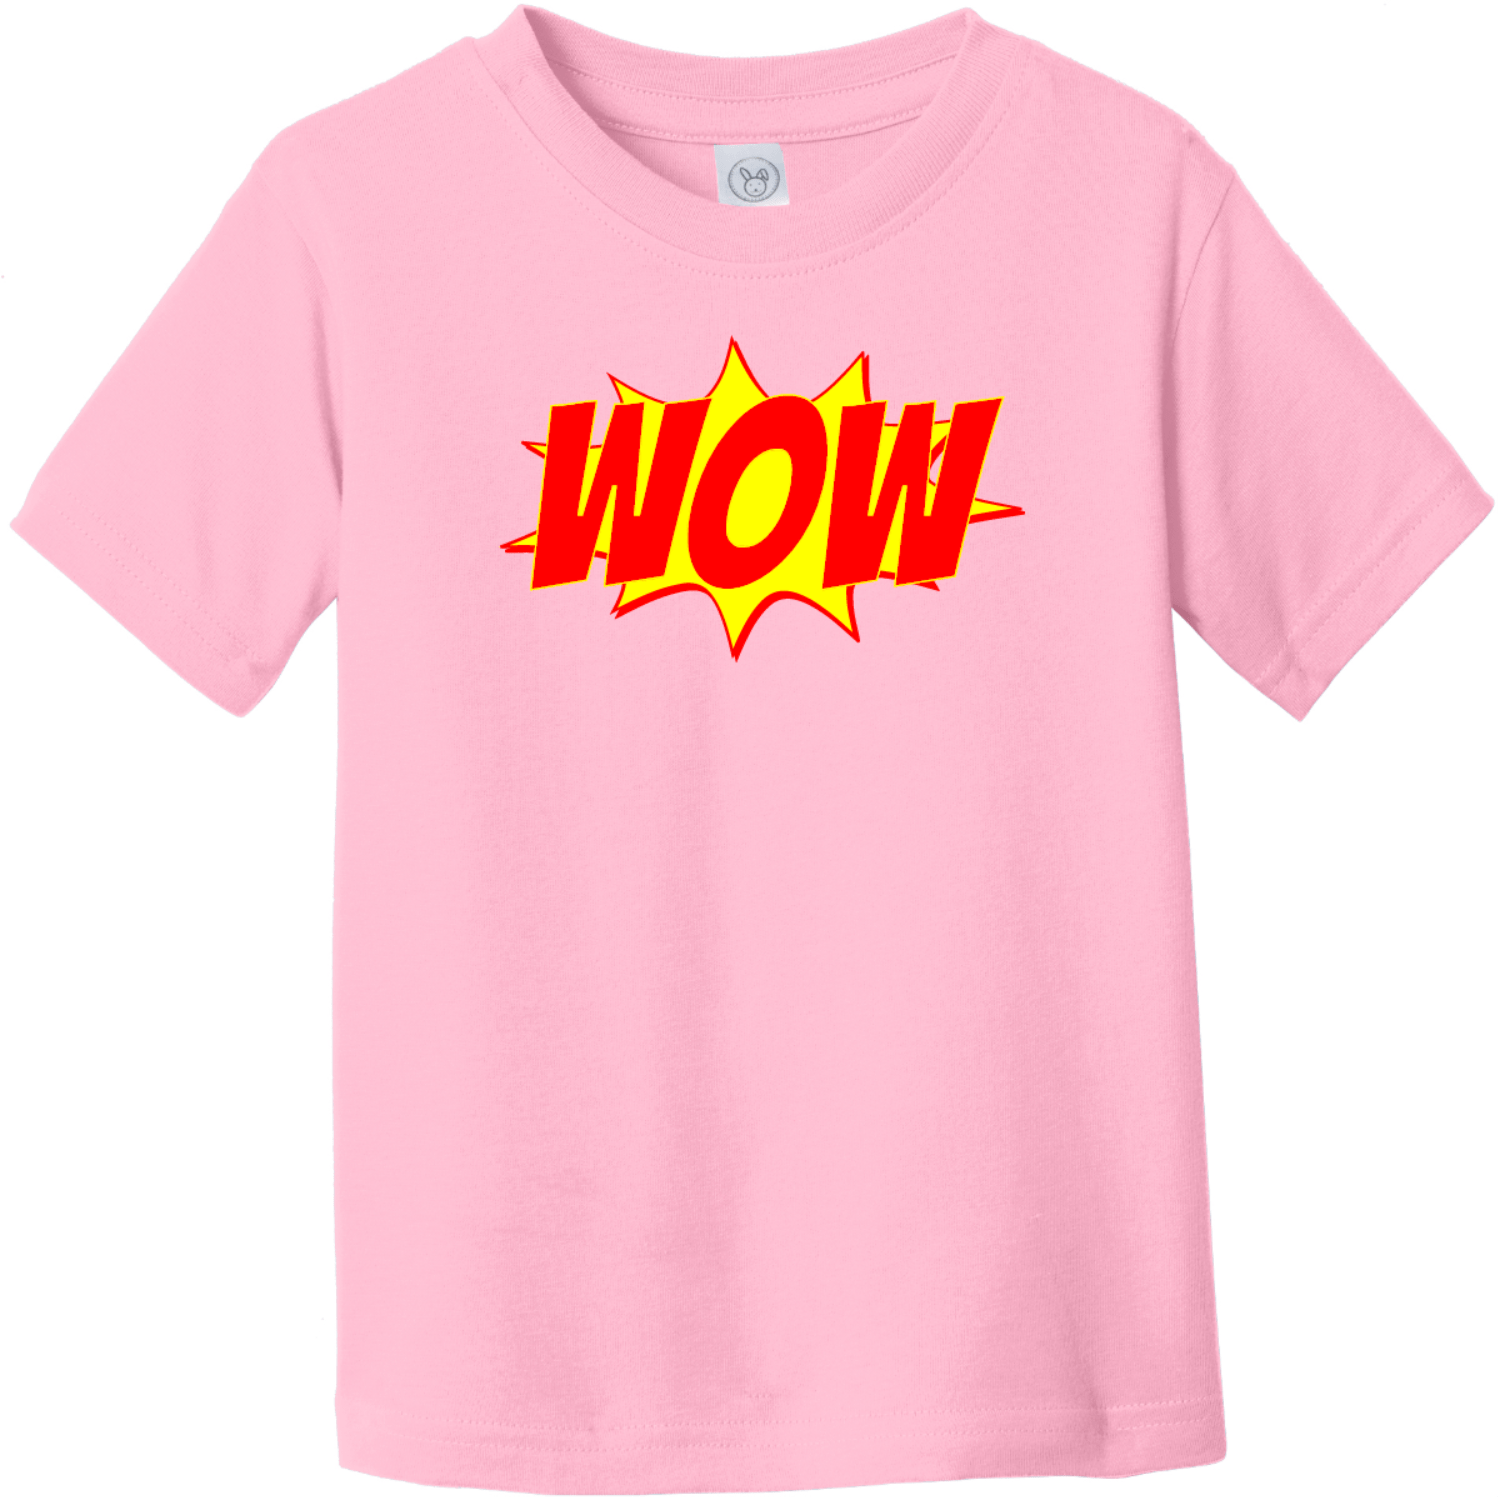 Wow Word Explosion Toddler T-Shirt Pink Rabbit Skins Toddler Fine Jersey Tee RS3321